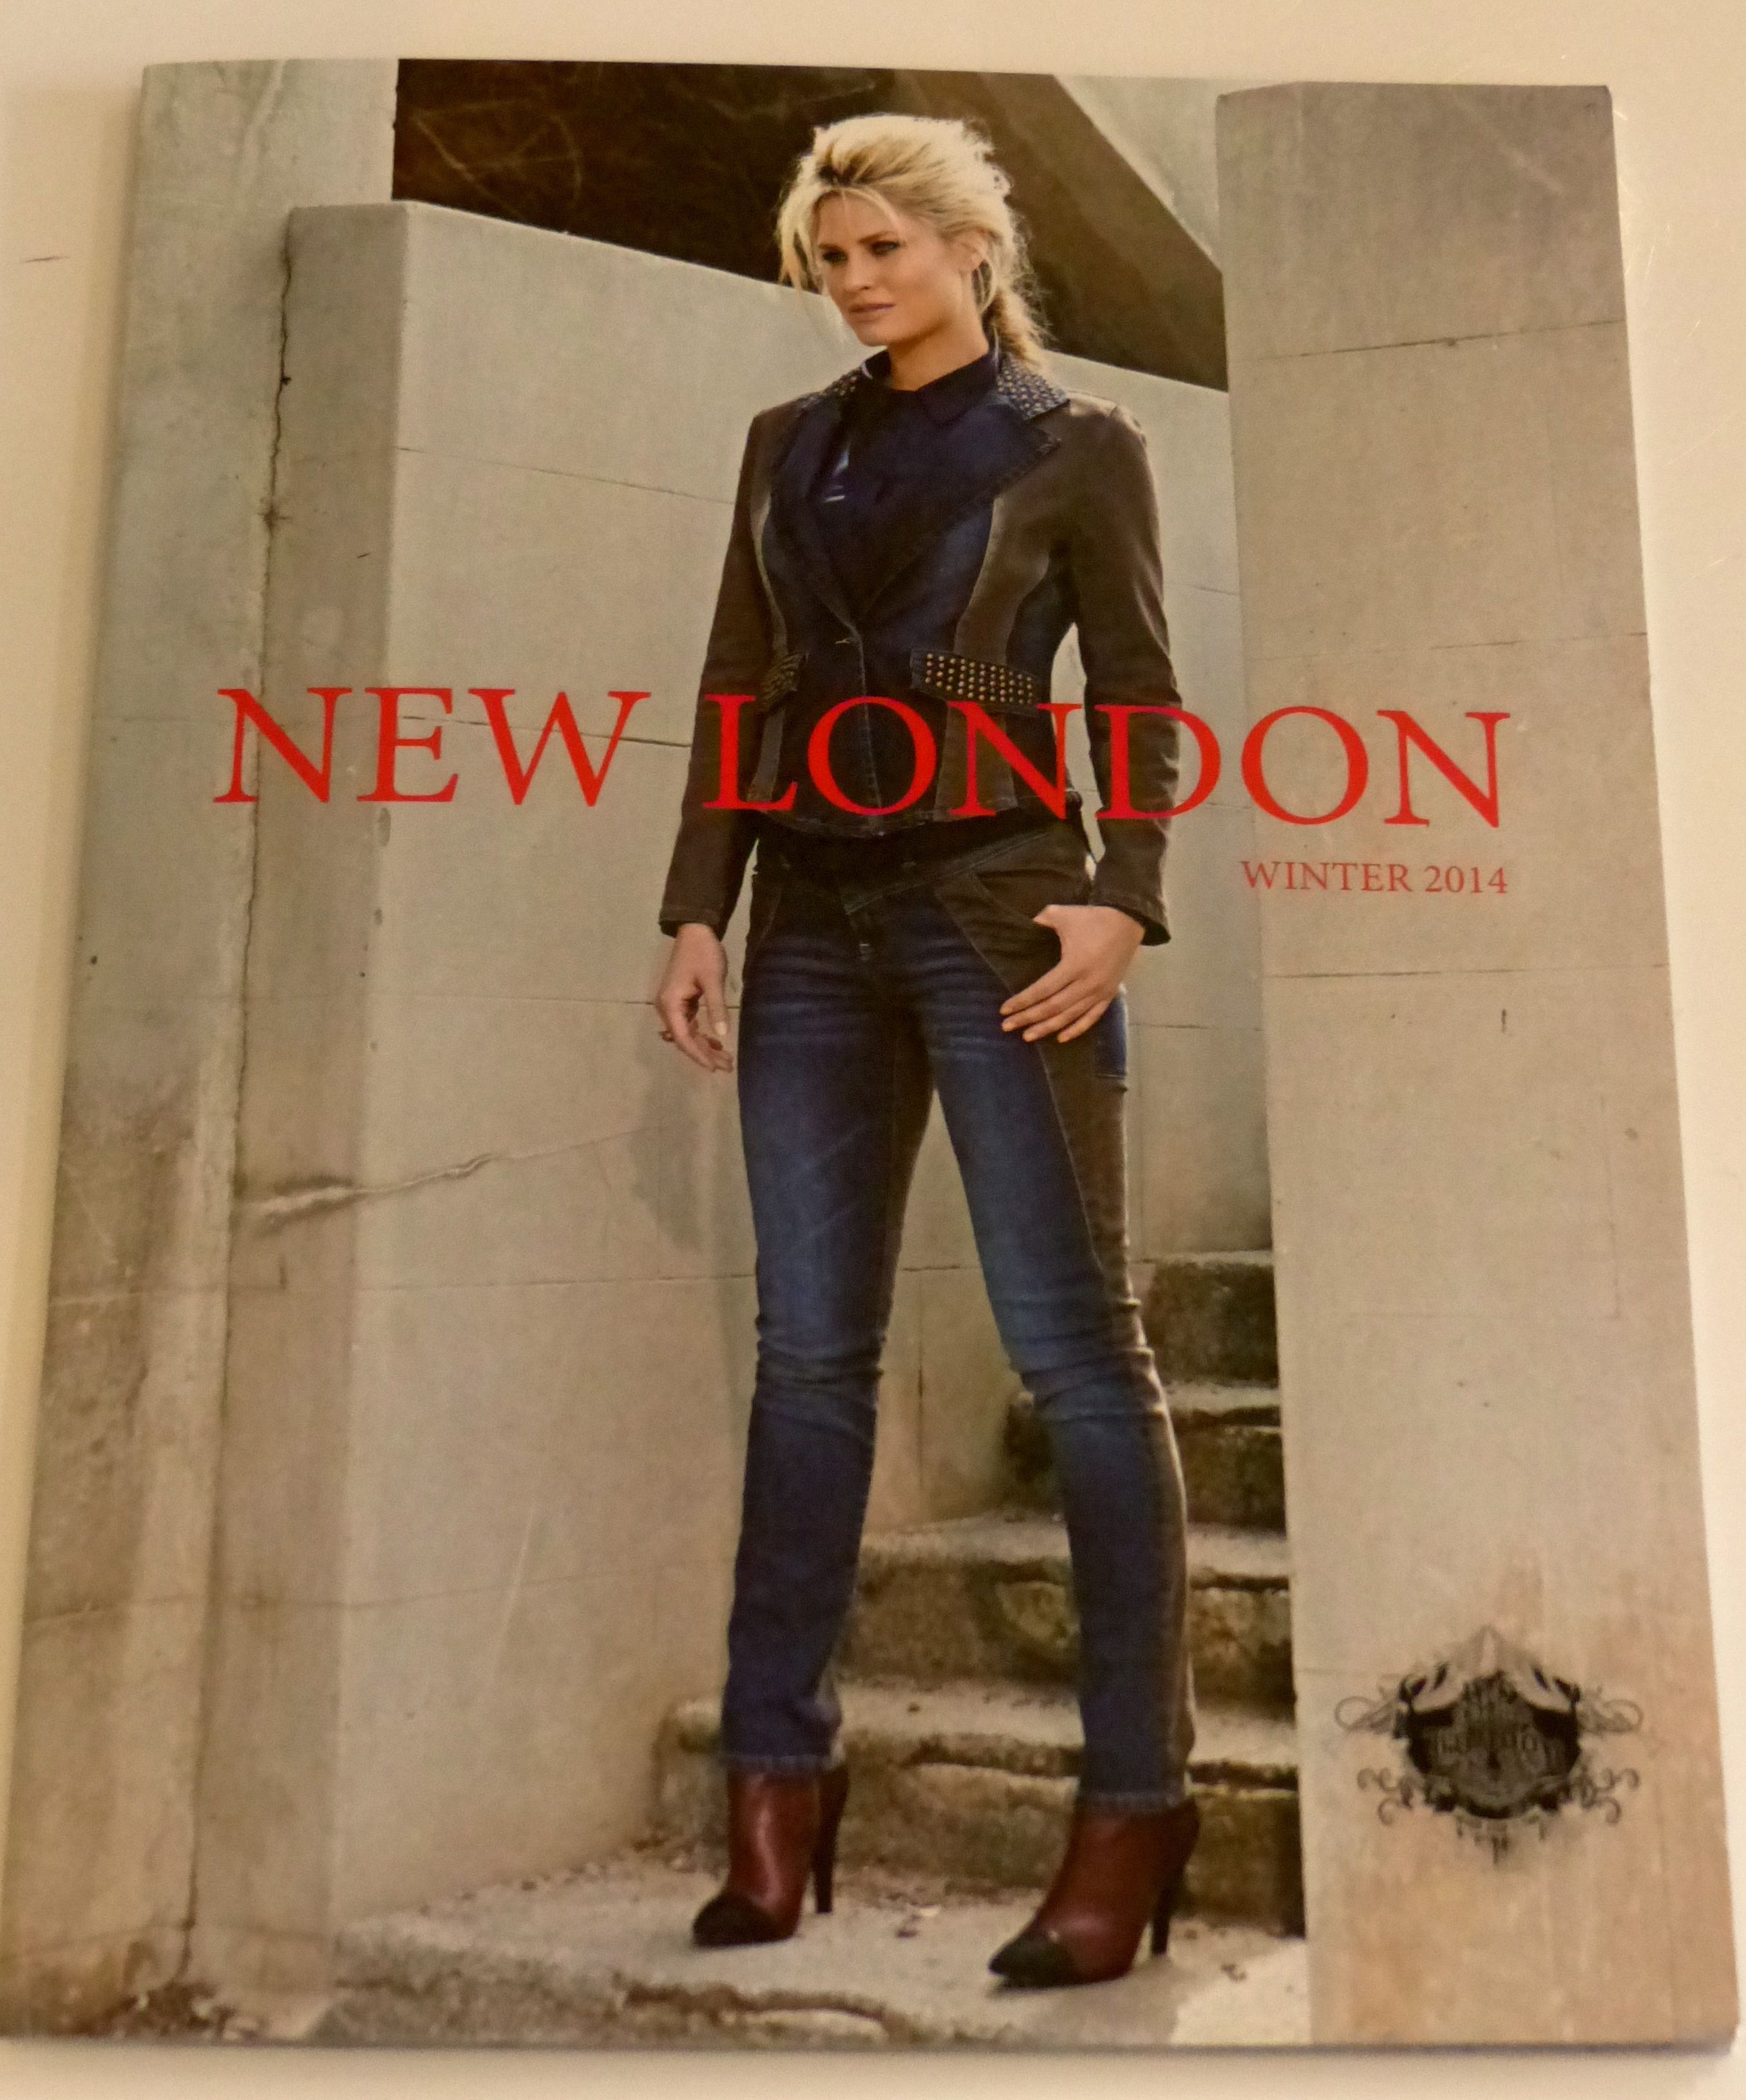 New London brochure - Winter 2014